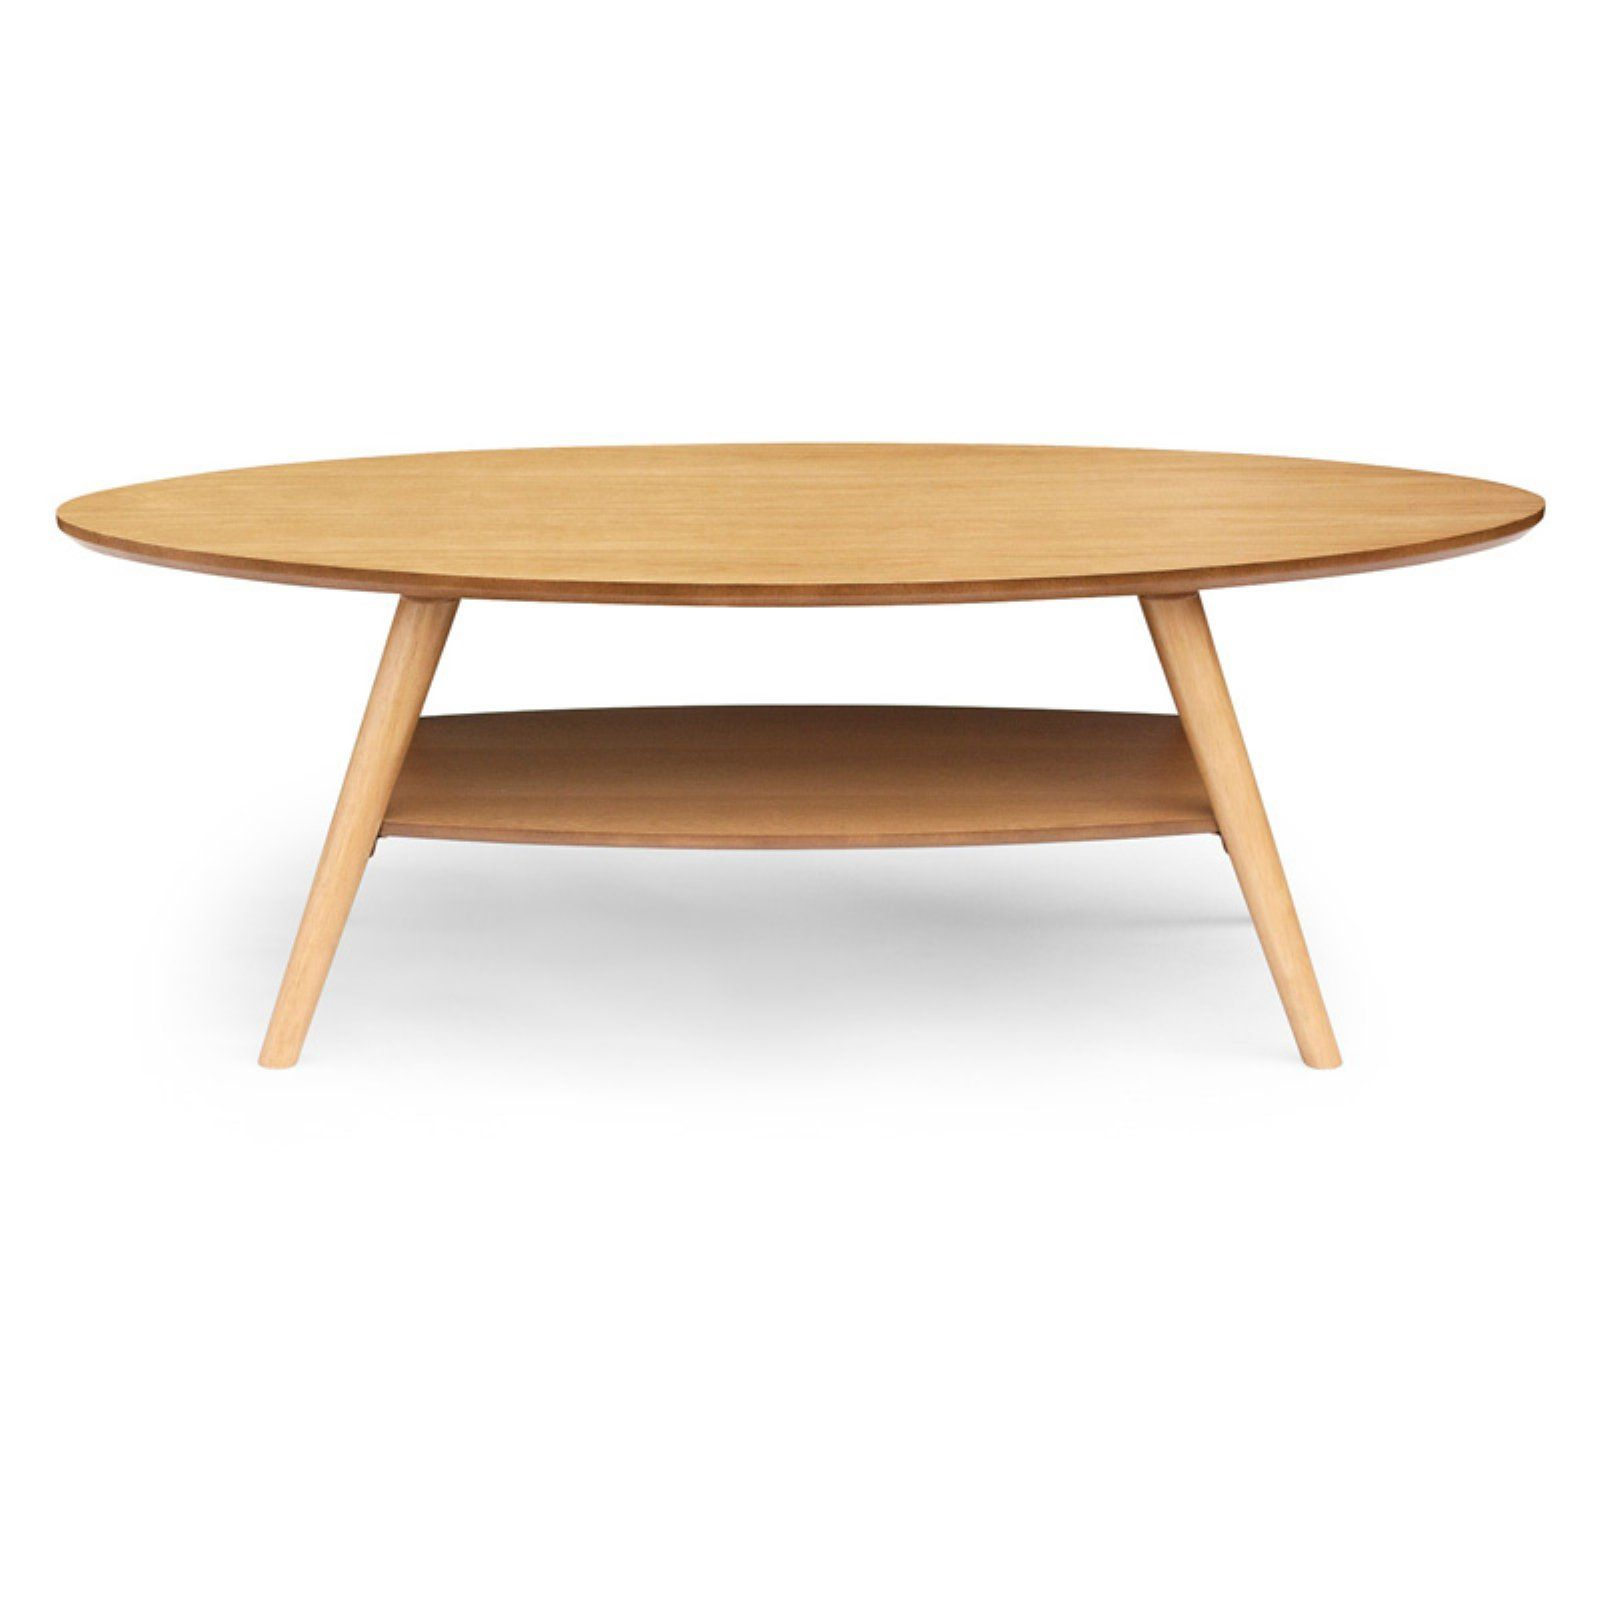 Aeon Furniture Darby Modern Coffee Table With Veneer Top Round Coffee Table Modern Coffee Table Modern Coffee Tables [ 1600 x 1600 Pixel ]